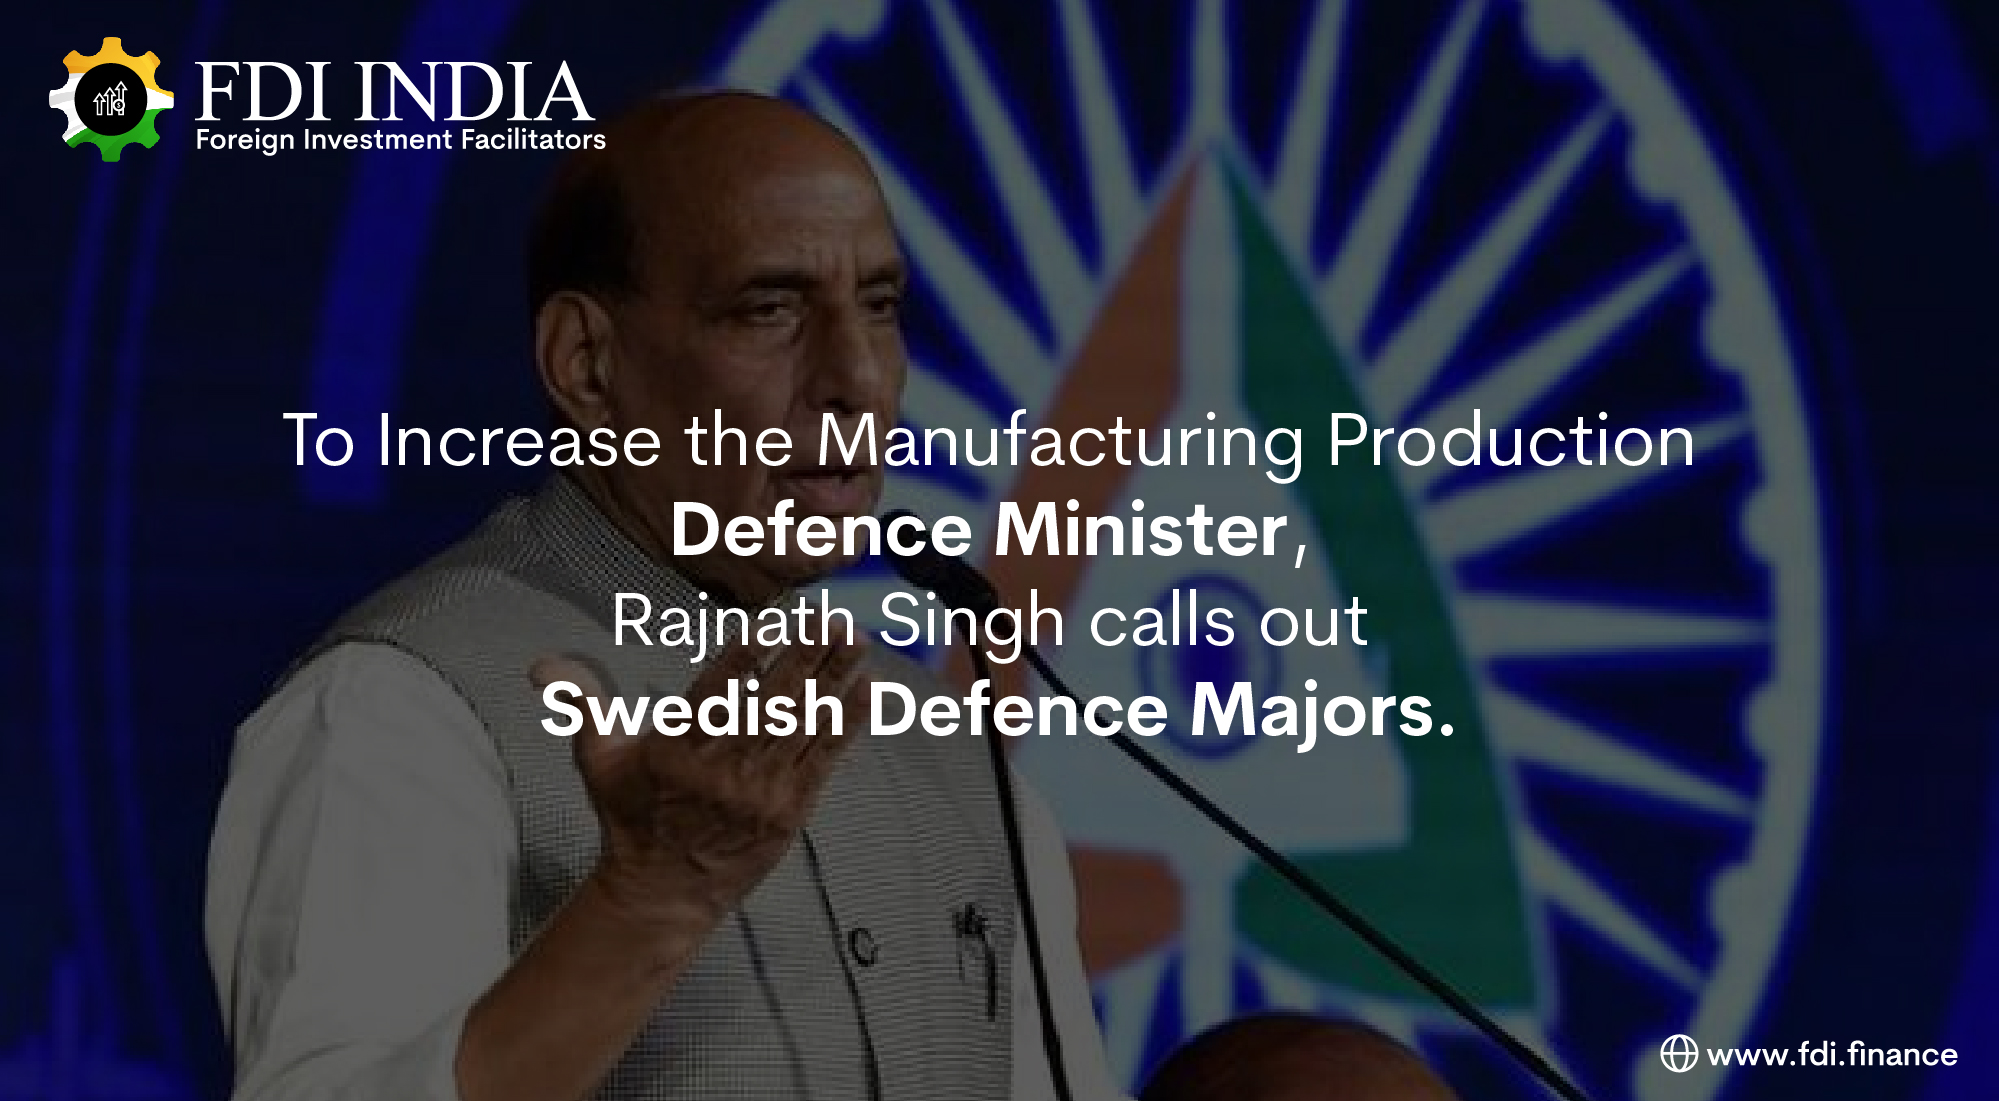 To Increase the Manufacturing Production Defence Minister, Rajnath Singh Calls Out Swedish Defence Majors